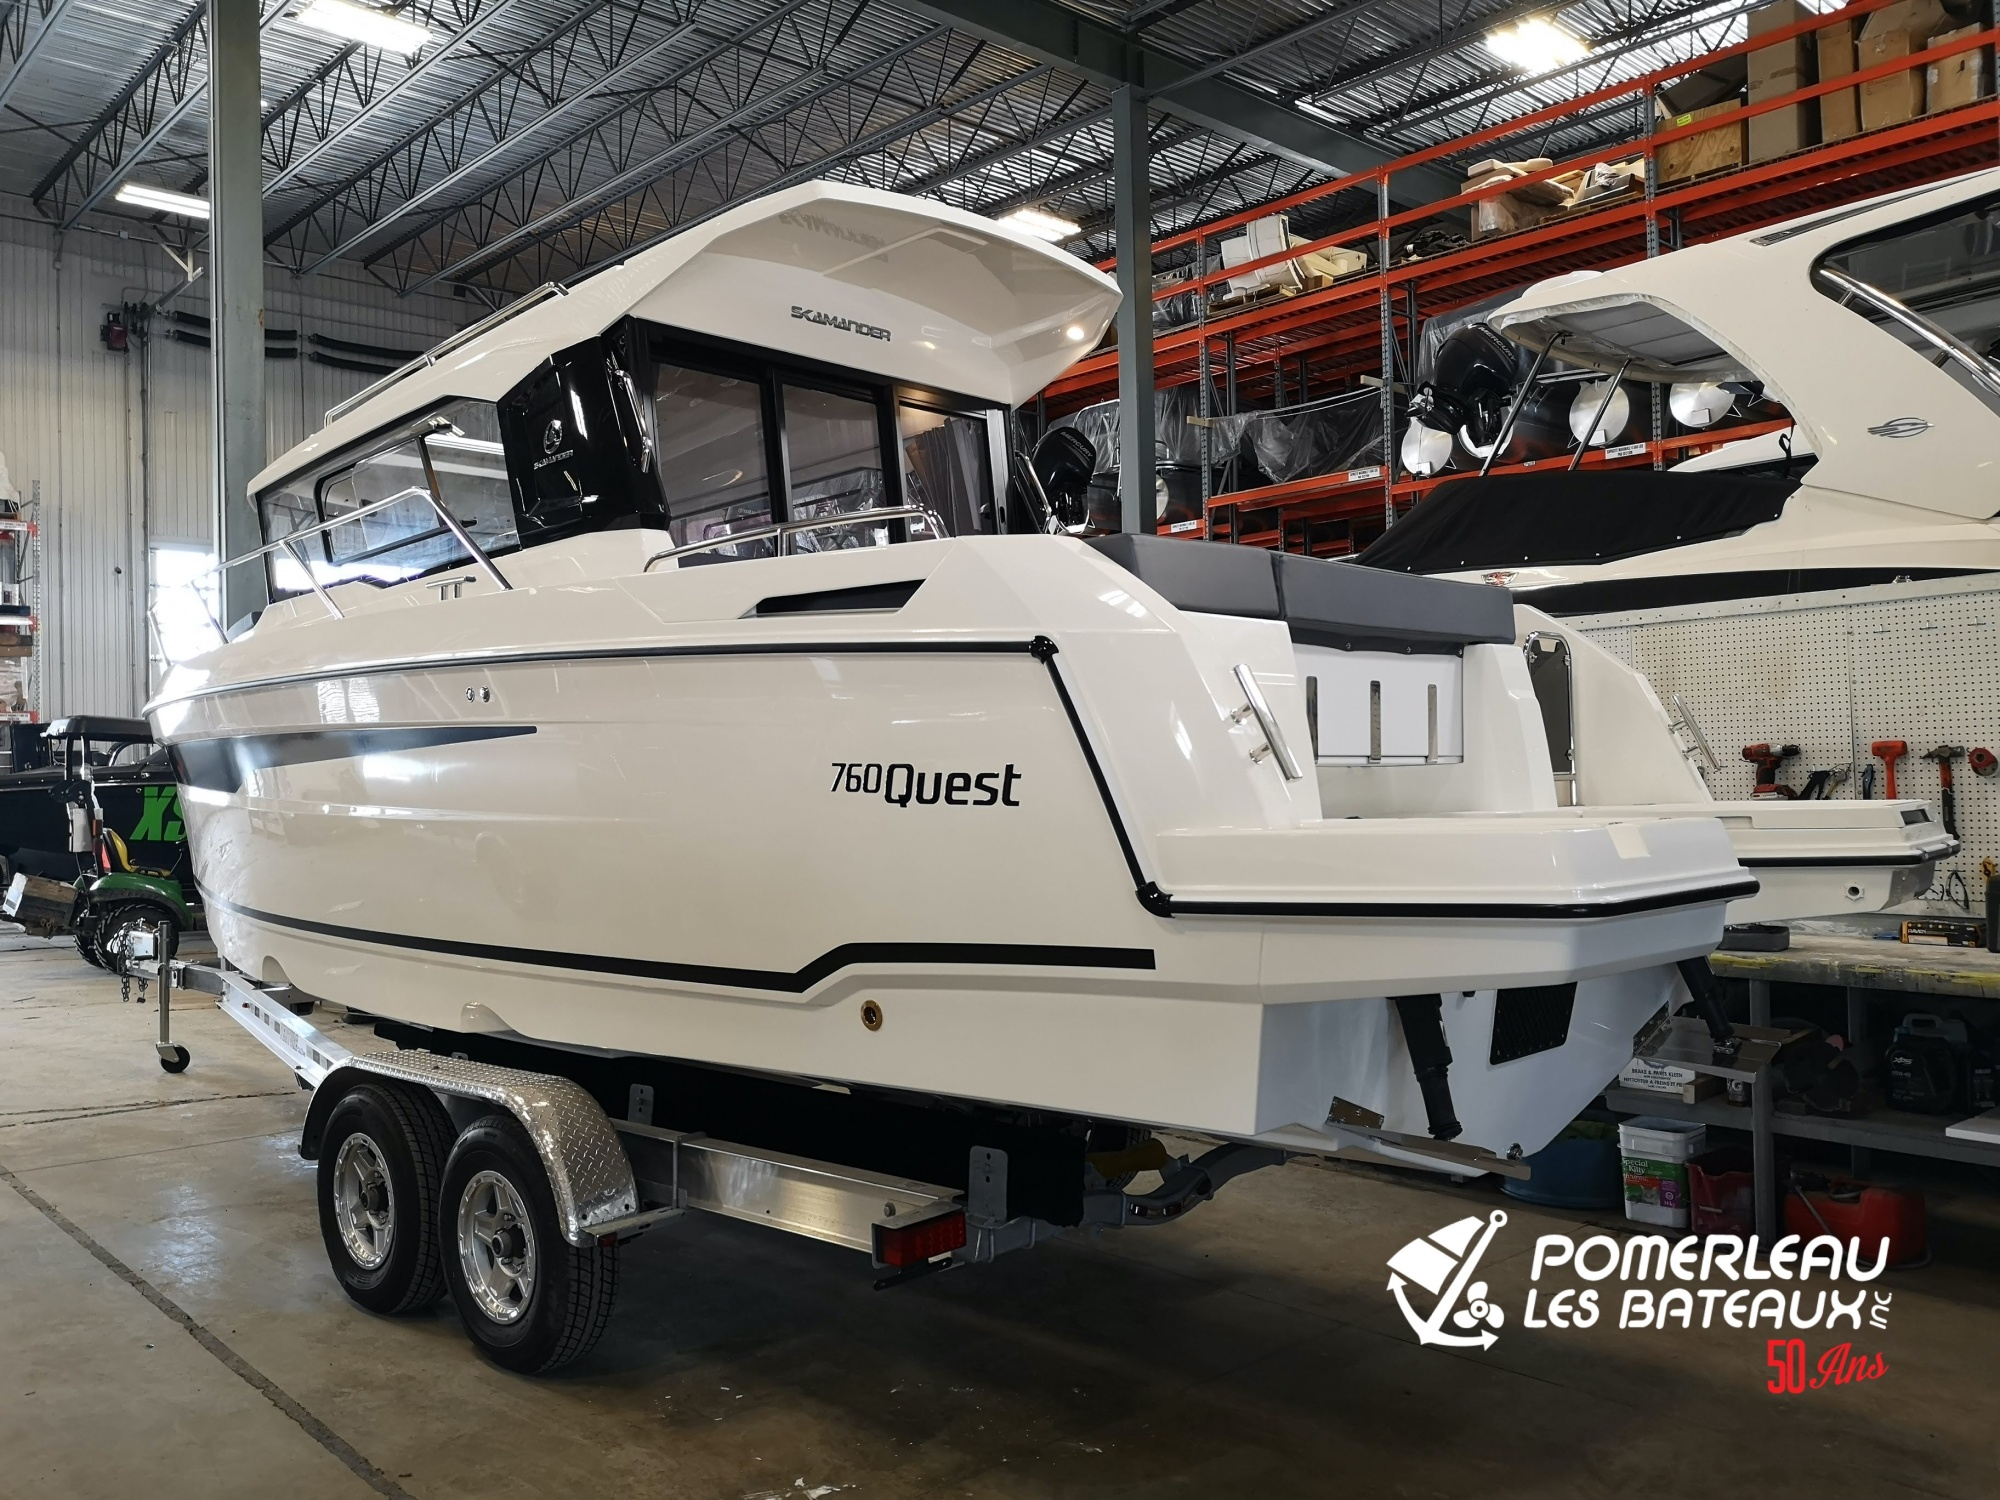 Parker Boats 760 Quest - IMG_20210125_101522